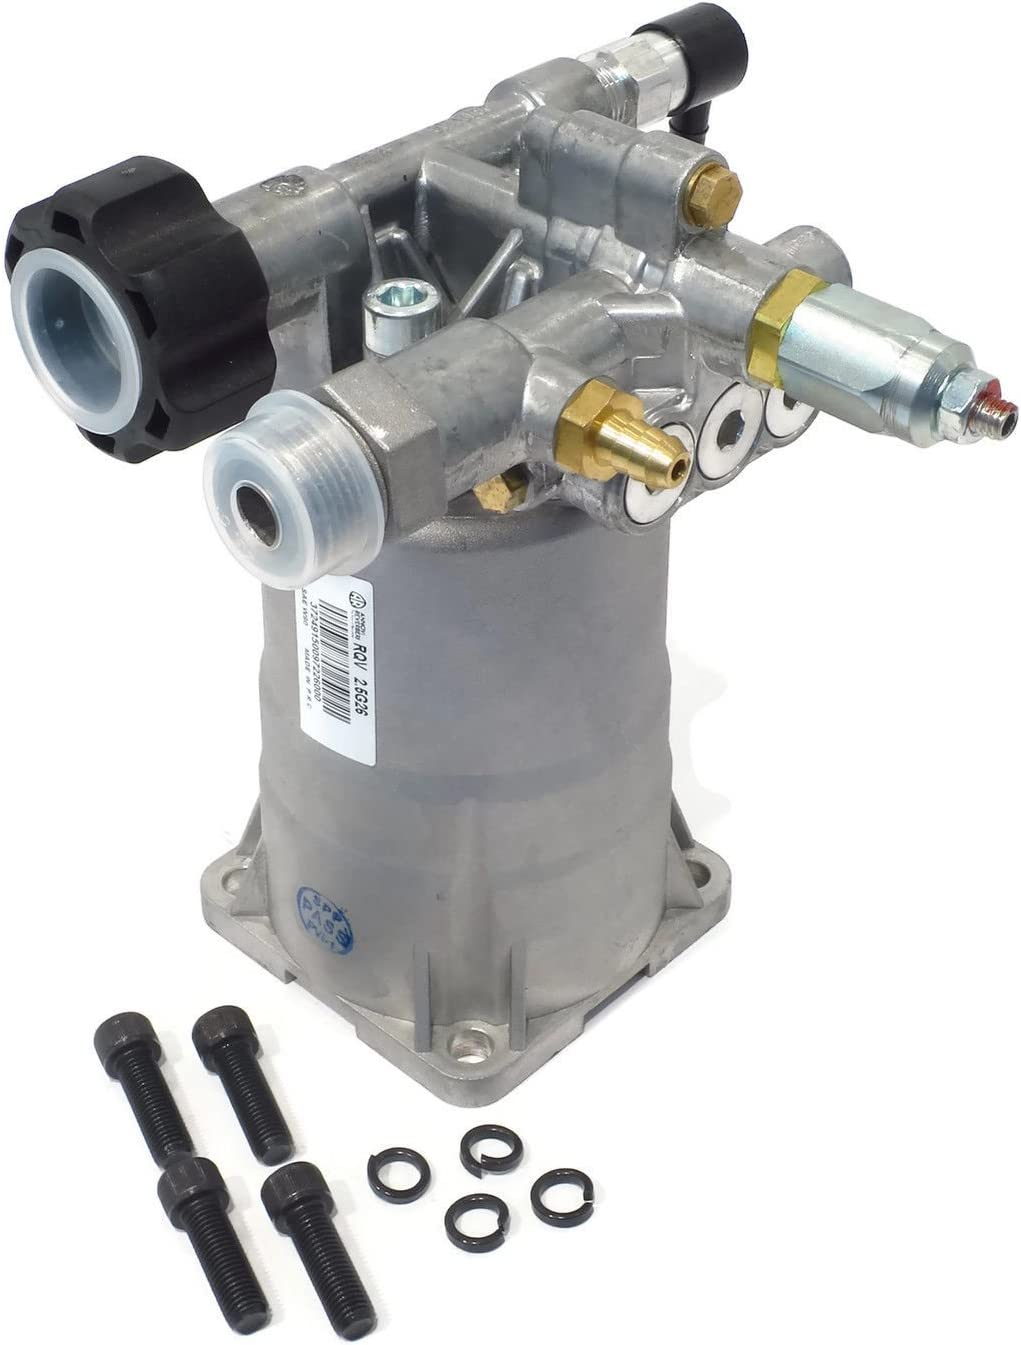 B07171SM81 Annovi Reverberi 2600 psi Power Pressure Washer Water Pump Porter Cable ZR2800 D2400H D2400H-1 by The ROP Shop 71YArPbT2pL.SL1500_